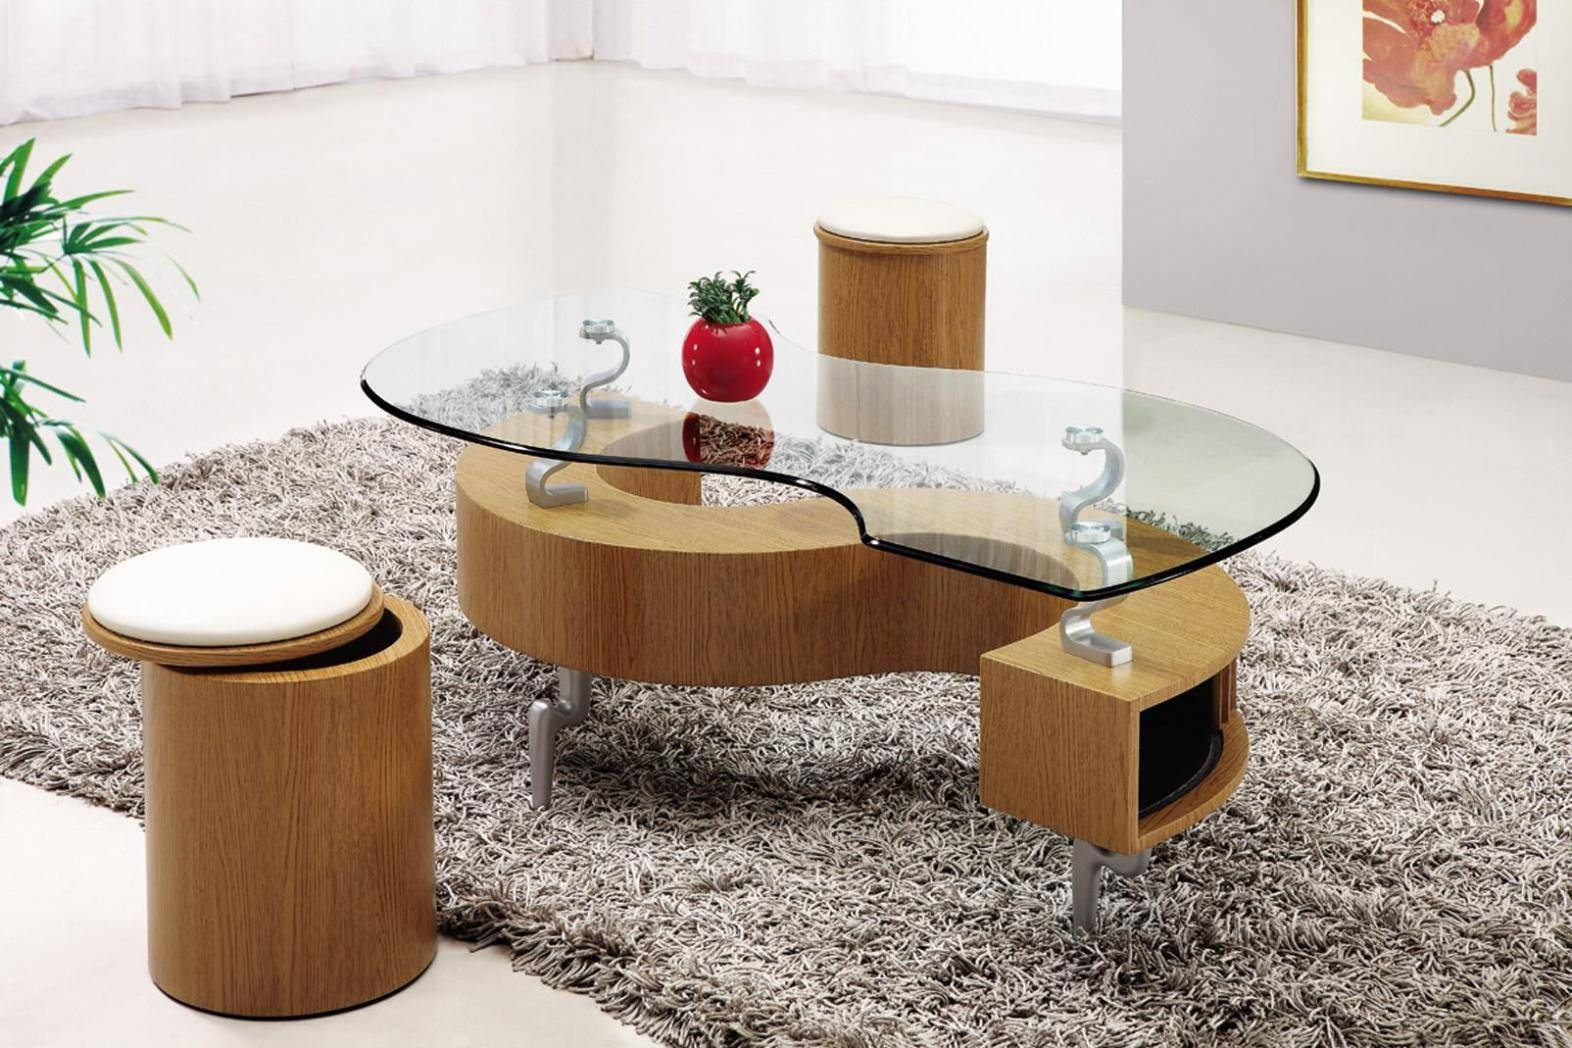 Coffee Table: Stylish Coffee Table With Stools Underneath Ideas throughout Stylish Coffee Tables (Image 7 of 30)